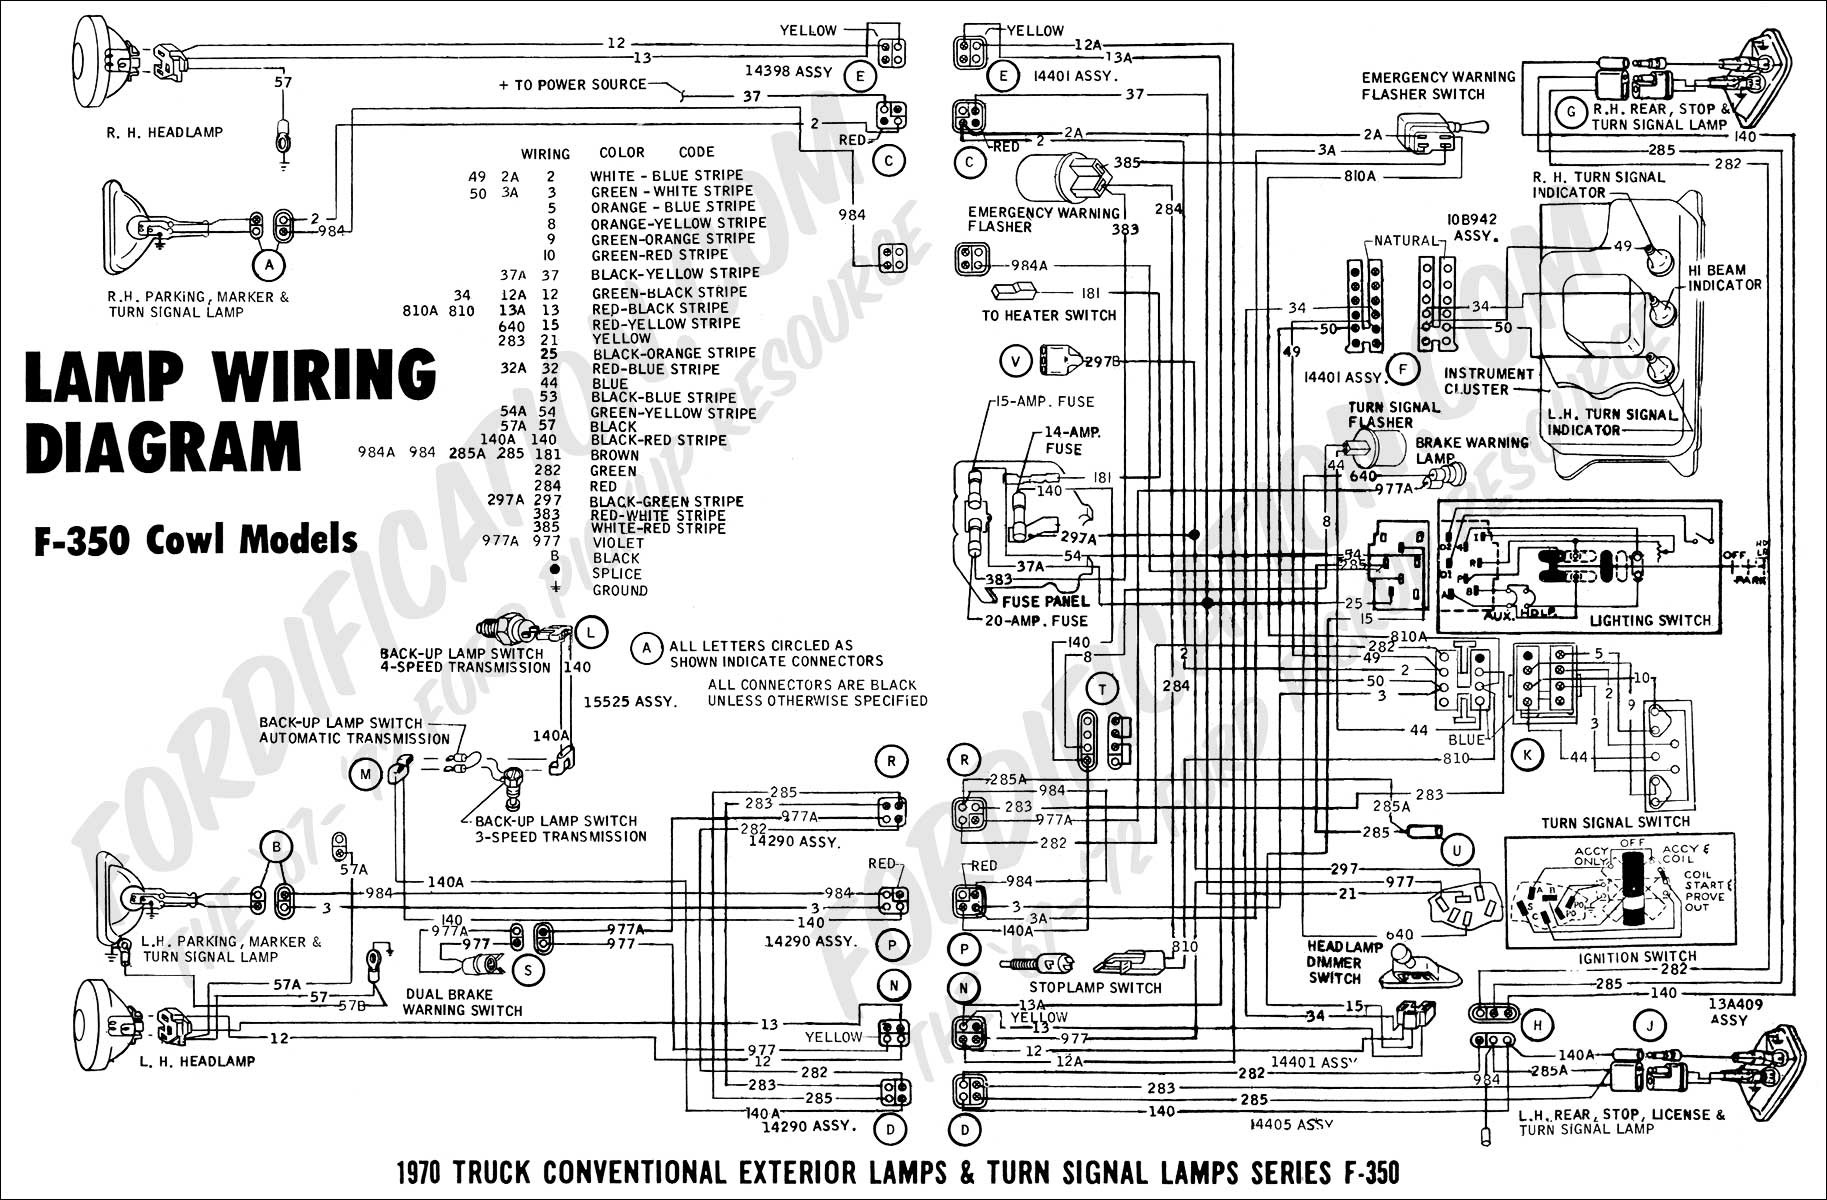 2001 ford Explorer Sport Engine Diagram F750 Wiring Diagram Headlamp to Her  with 99 ford F